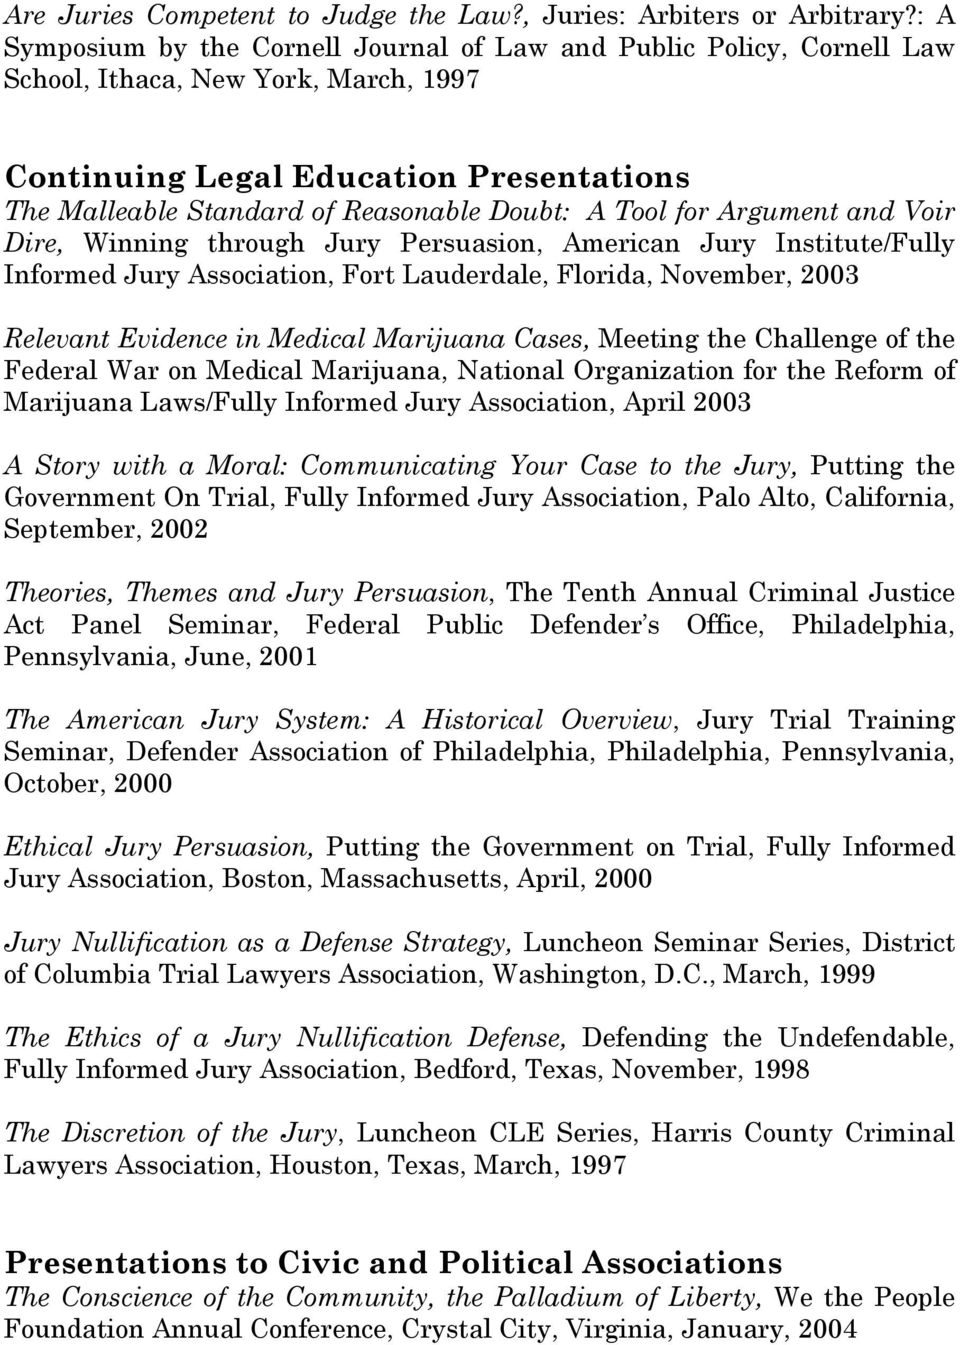 Tool for Argument and Voir Dire, Winning through Jury Persuasion, American Jury Institute/Fully Informed Jury Association, Fort Lauderdale, Florida, November, 2003 Relevant Evidence in Medical